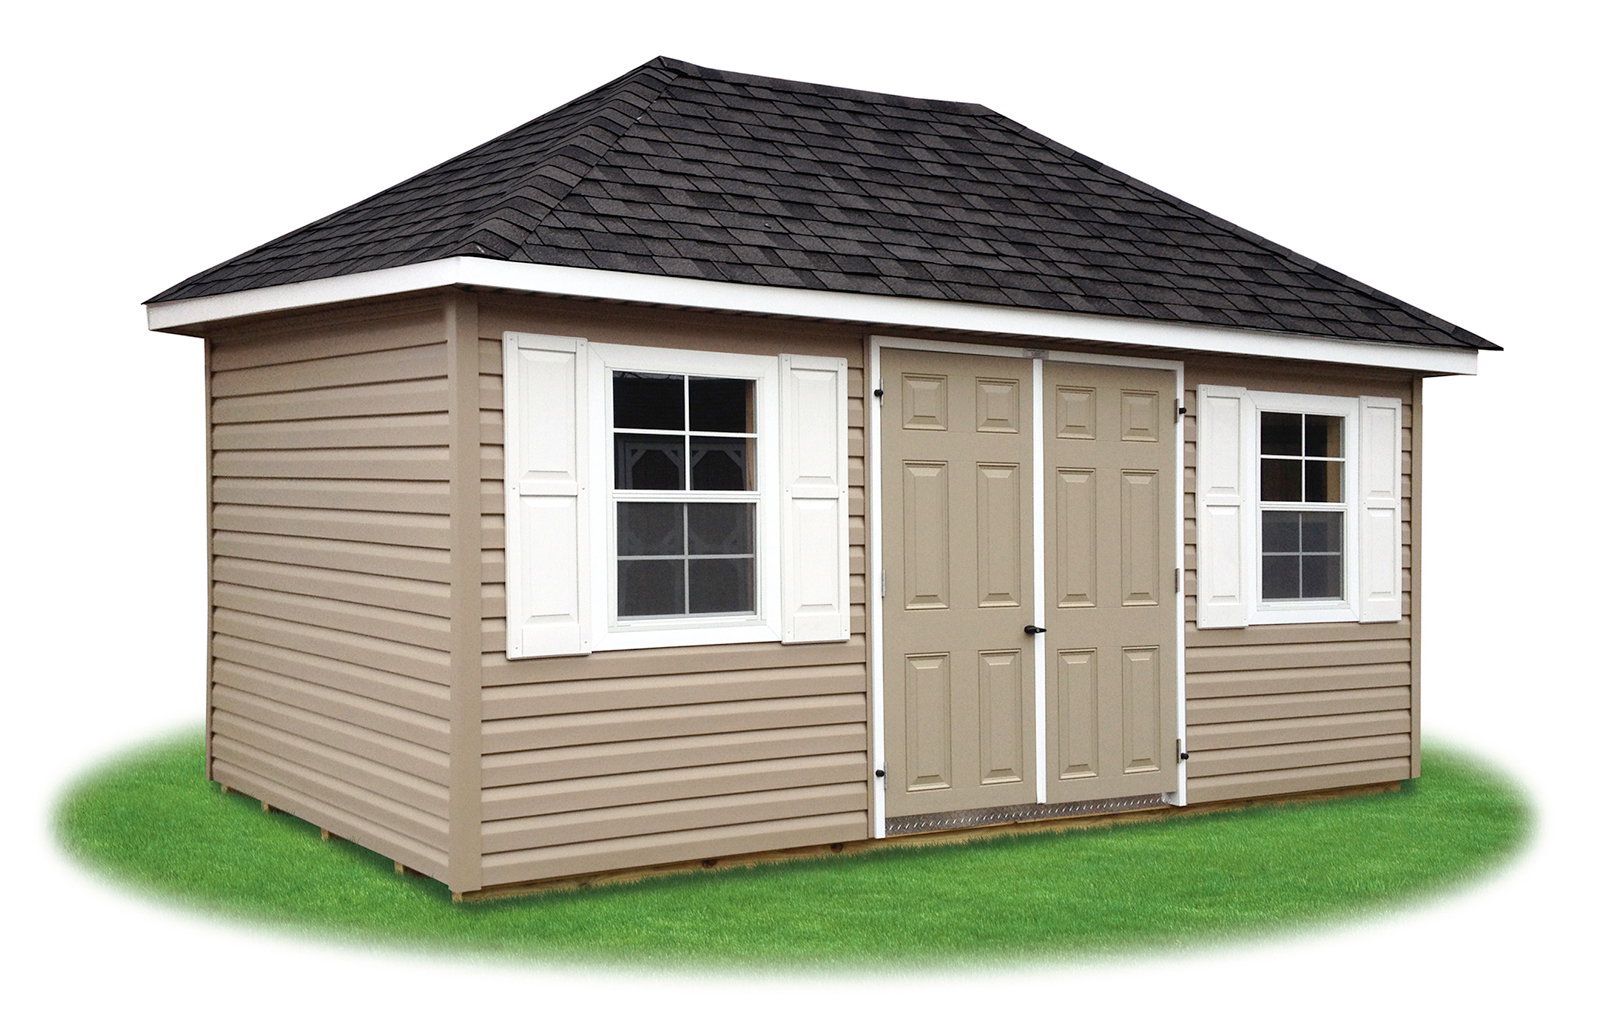 ss usa shed customvalushed sheds products custom u wooden storage val vinyl